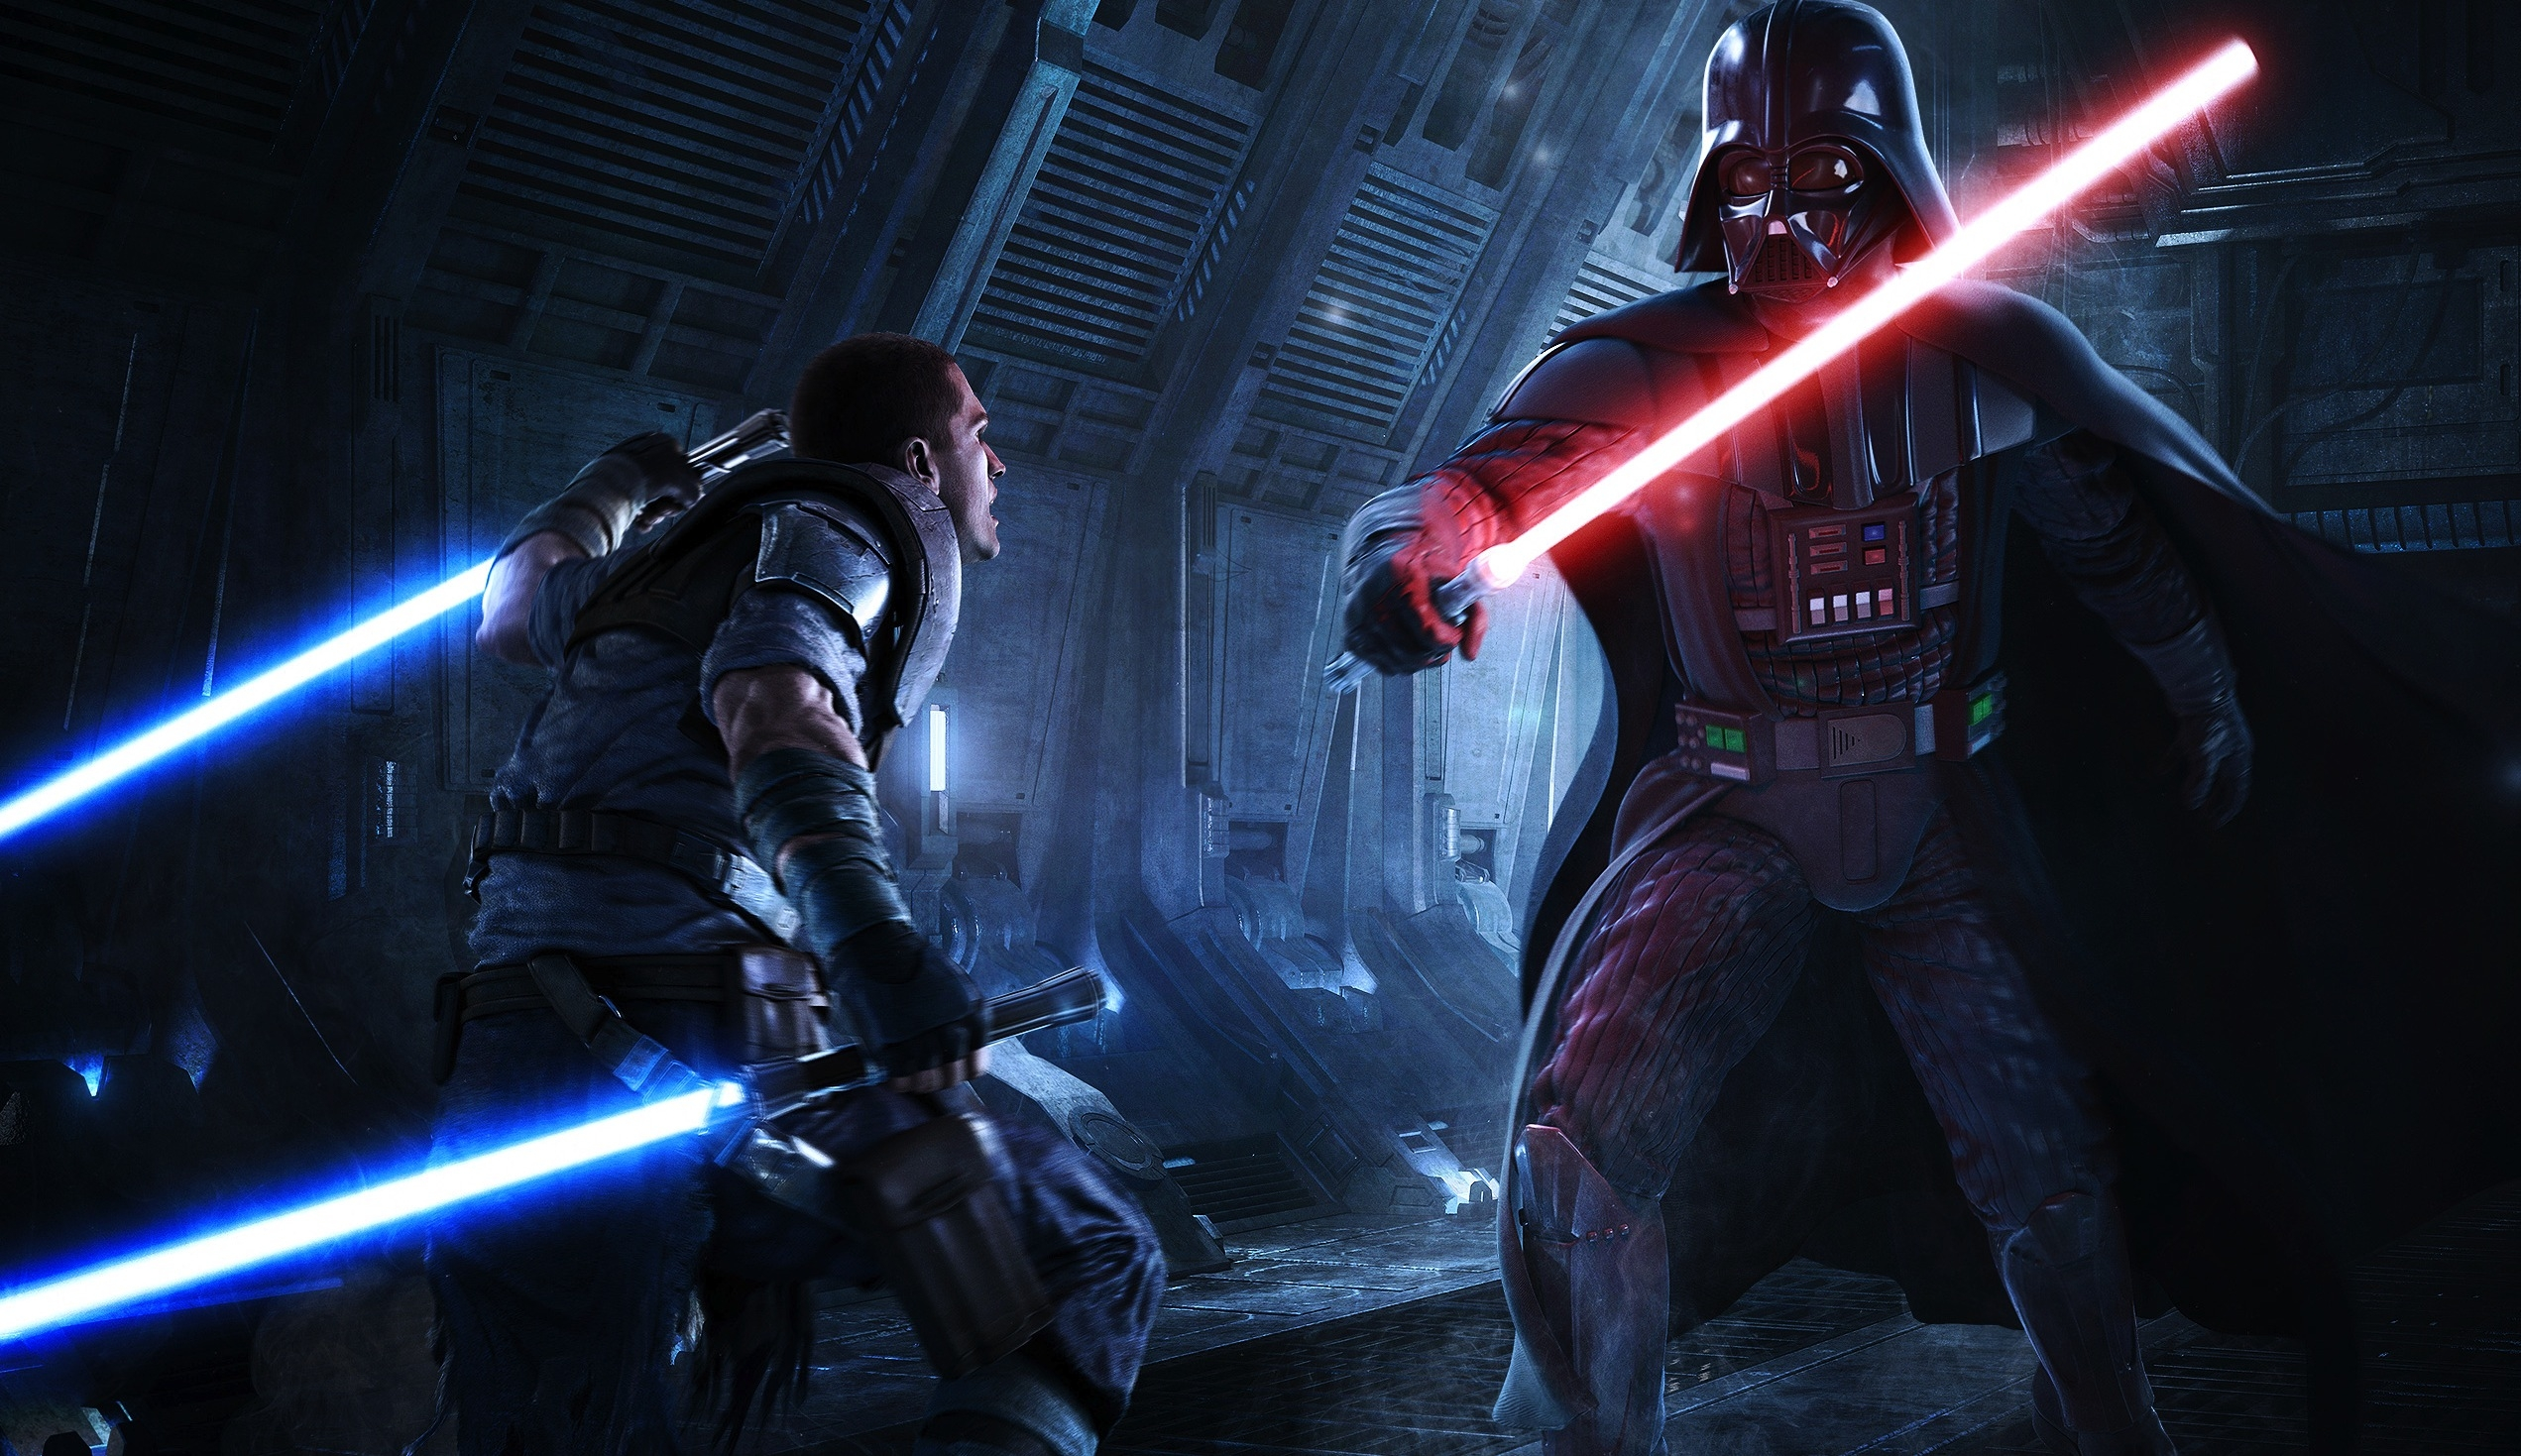 star_wars_the_force_unleashed_10_07_15_1.jpg